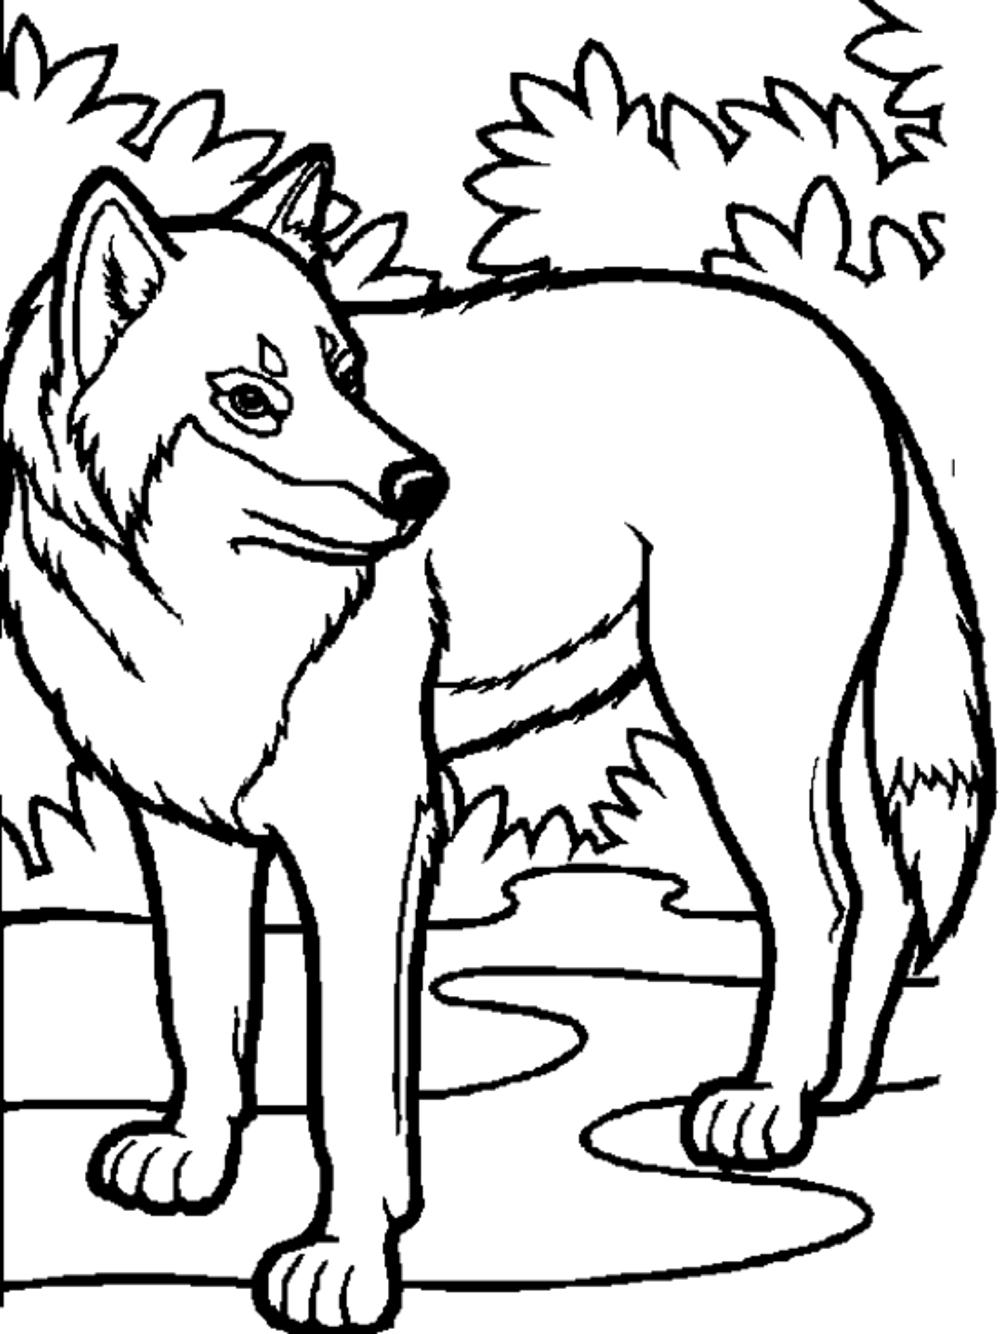 wolf coloring images print download wolf coloring pages theme wolf coloring images 1 1